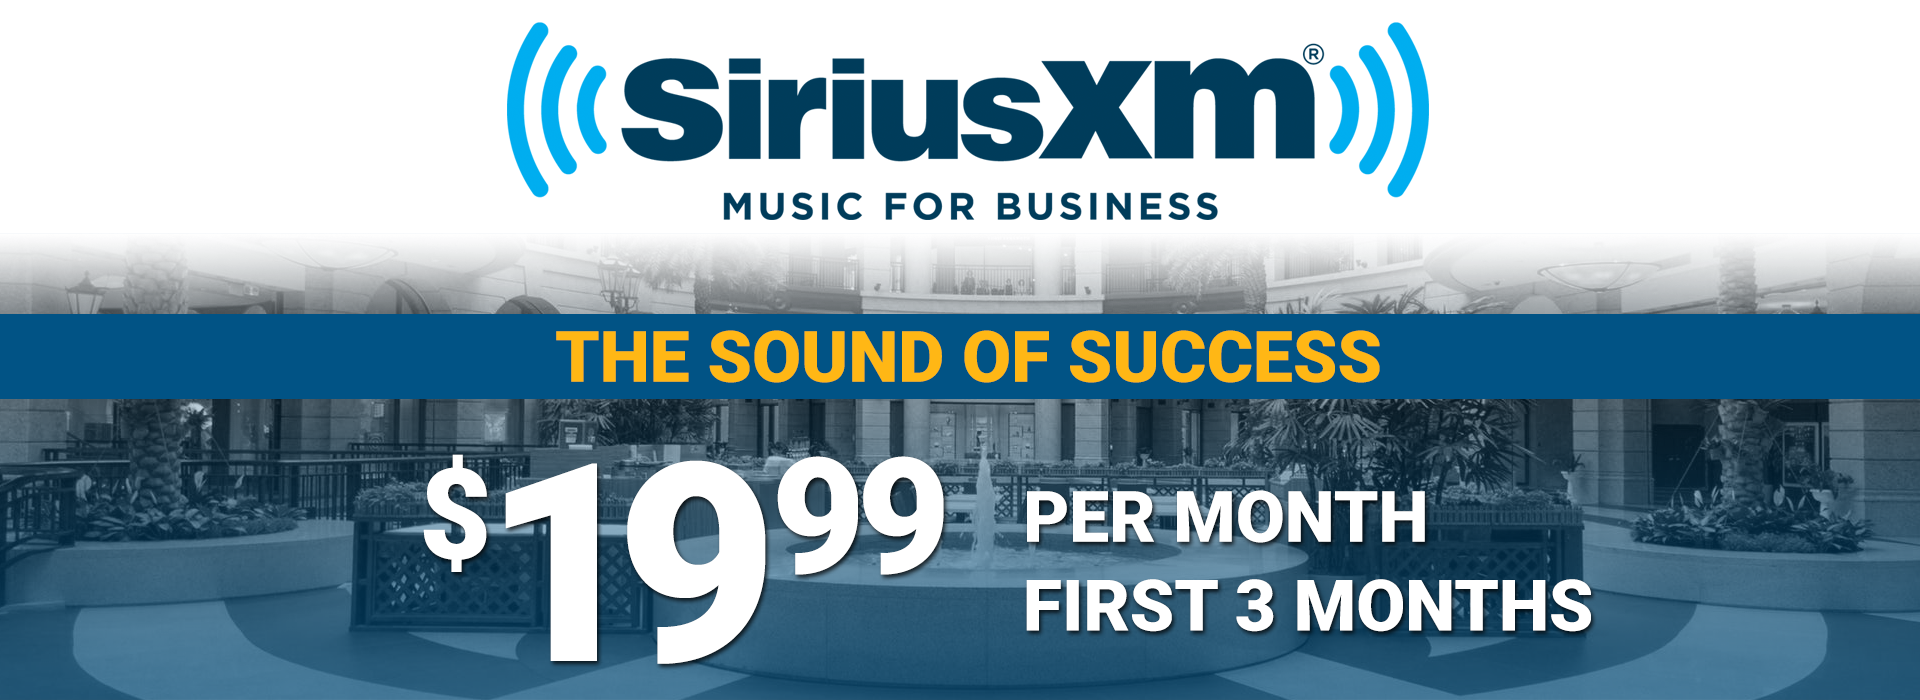 SiriusXM Music for Business Low Monthly Fee